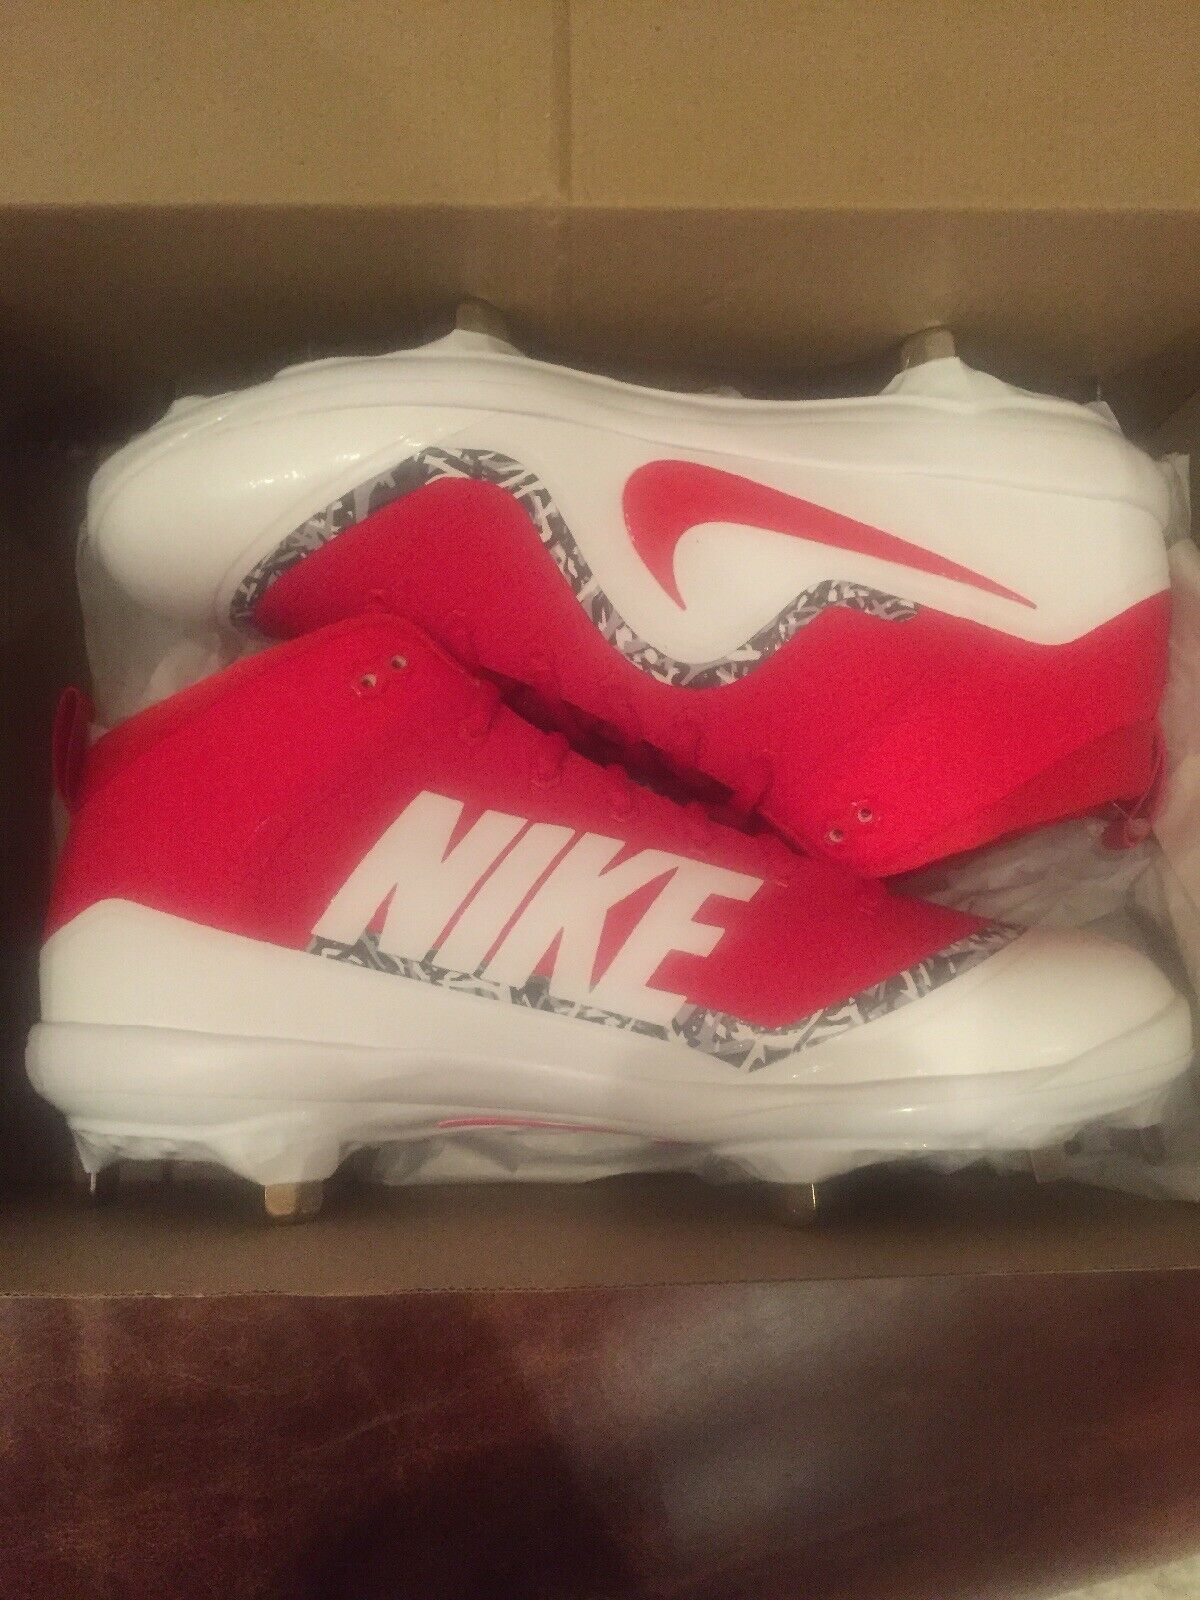 Nike Zoom Mike Trout 4 Cleats Black and White Baseball Men's Size 11.5 NWT